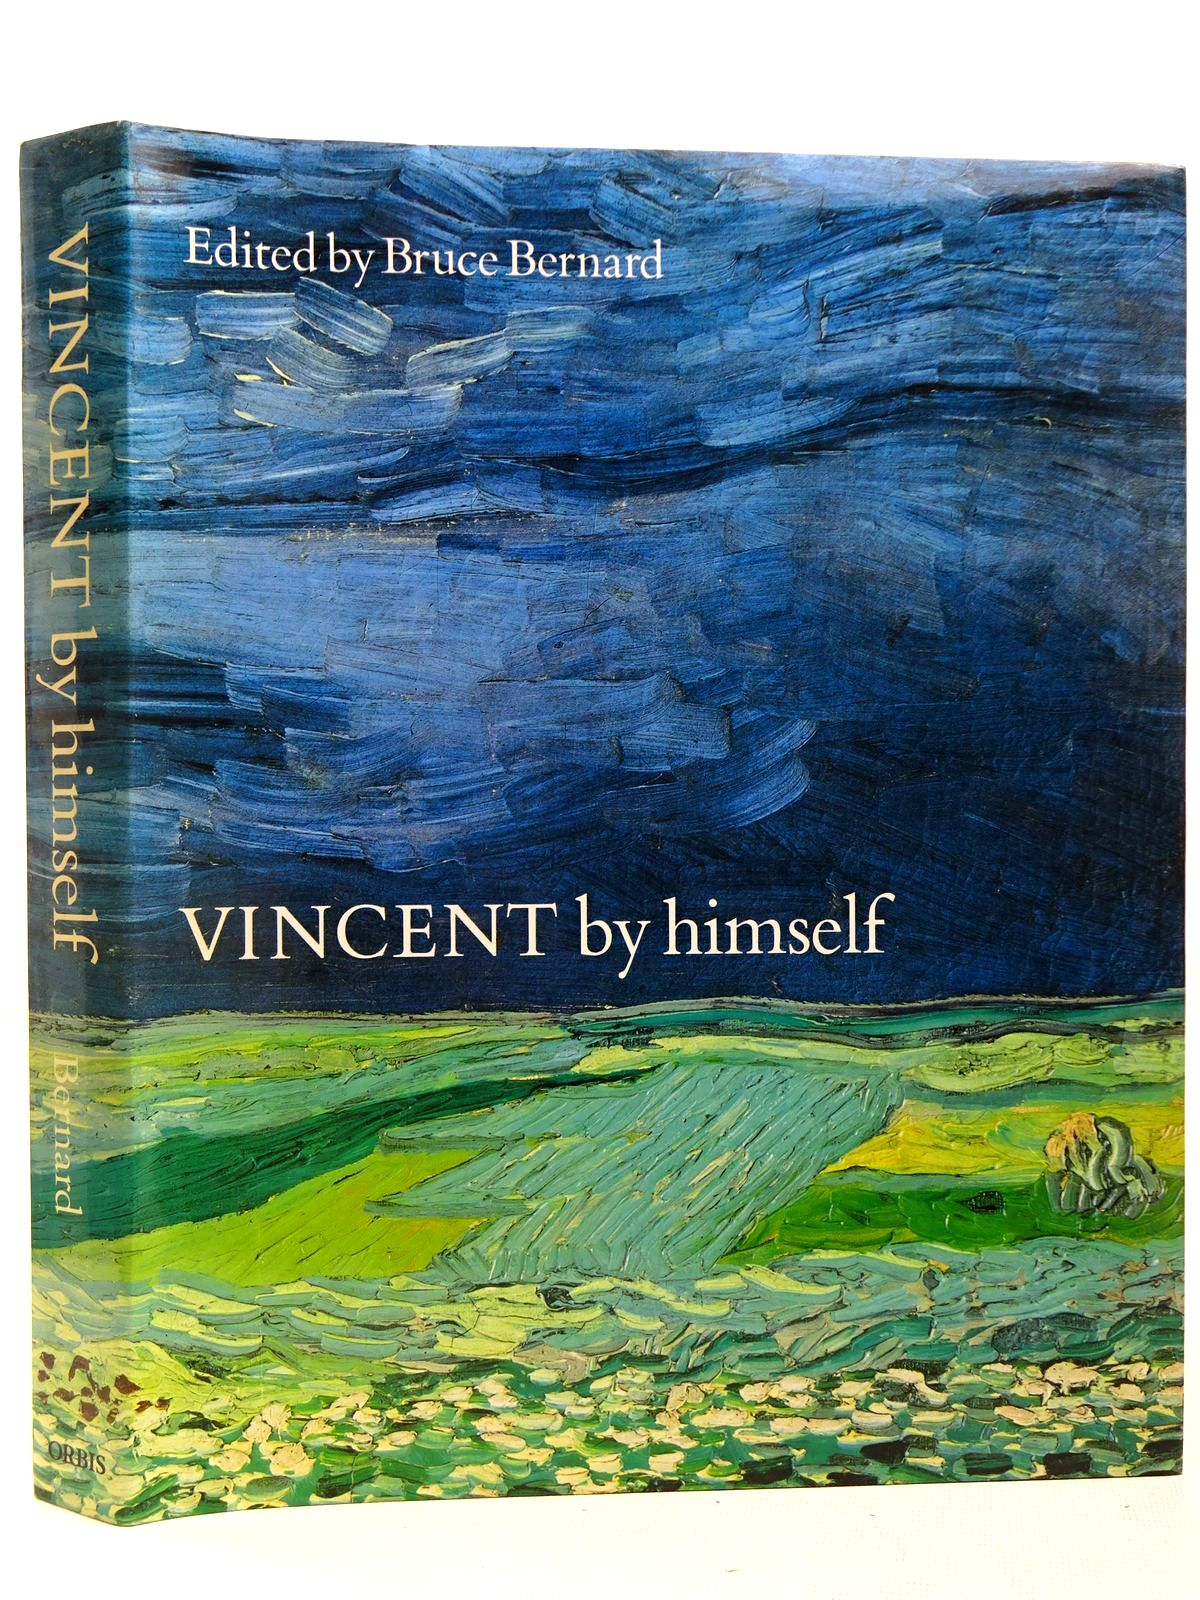 Photo of VINCENT BY HIMSELF written by Van Gogh, Vincent Bernard, Bruce illustrated by Van Gogh, Vincent published by Orbis Publishing (STOCK CODE: 2127921)  for sale by Stella & Rose's Books